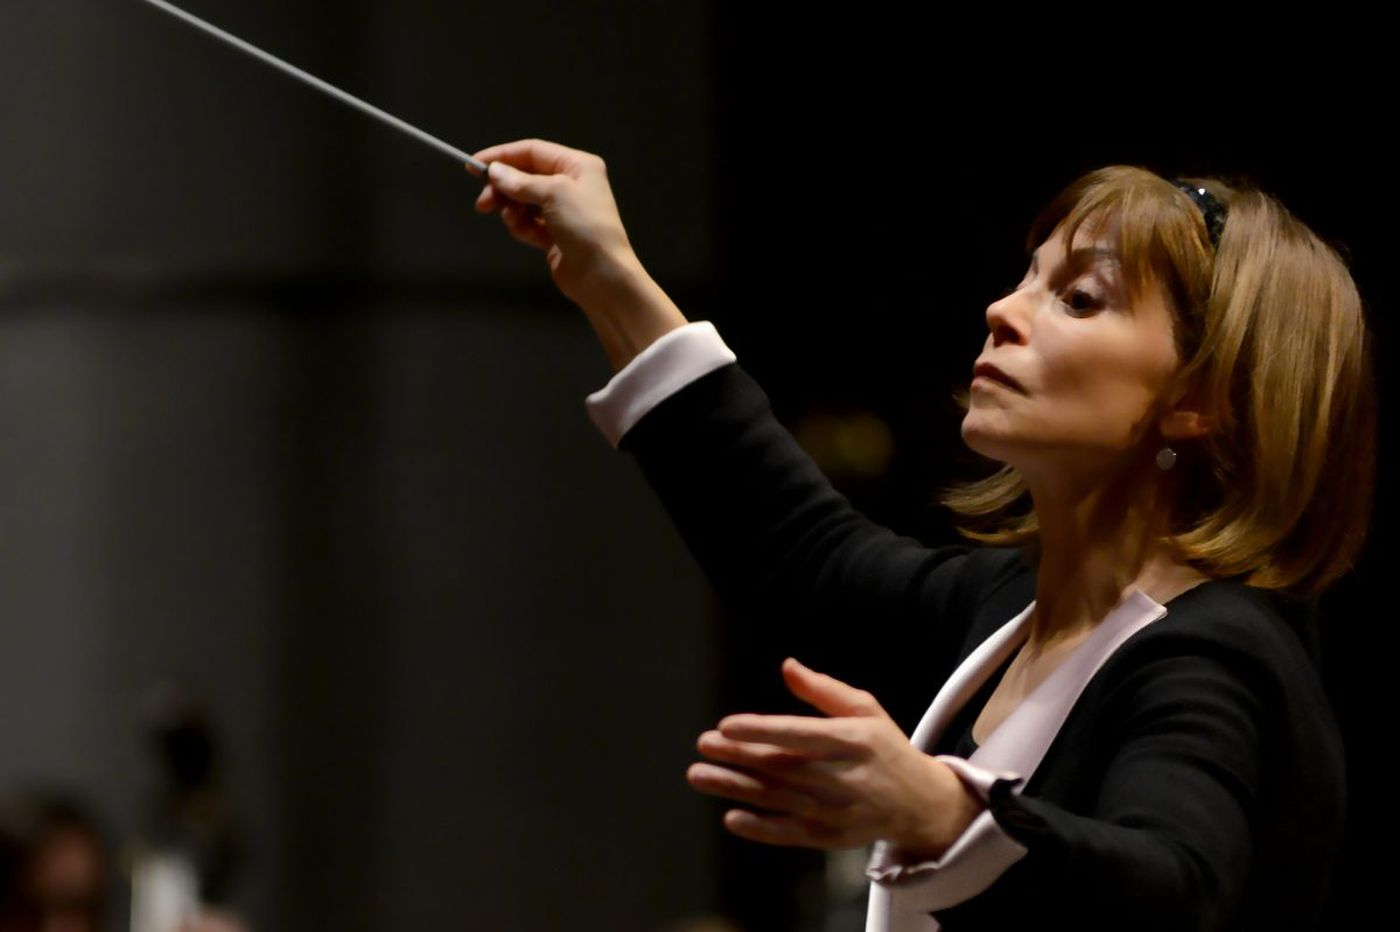 are women on the verge of big progress on the conductor s podium